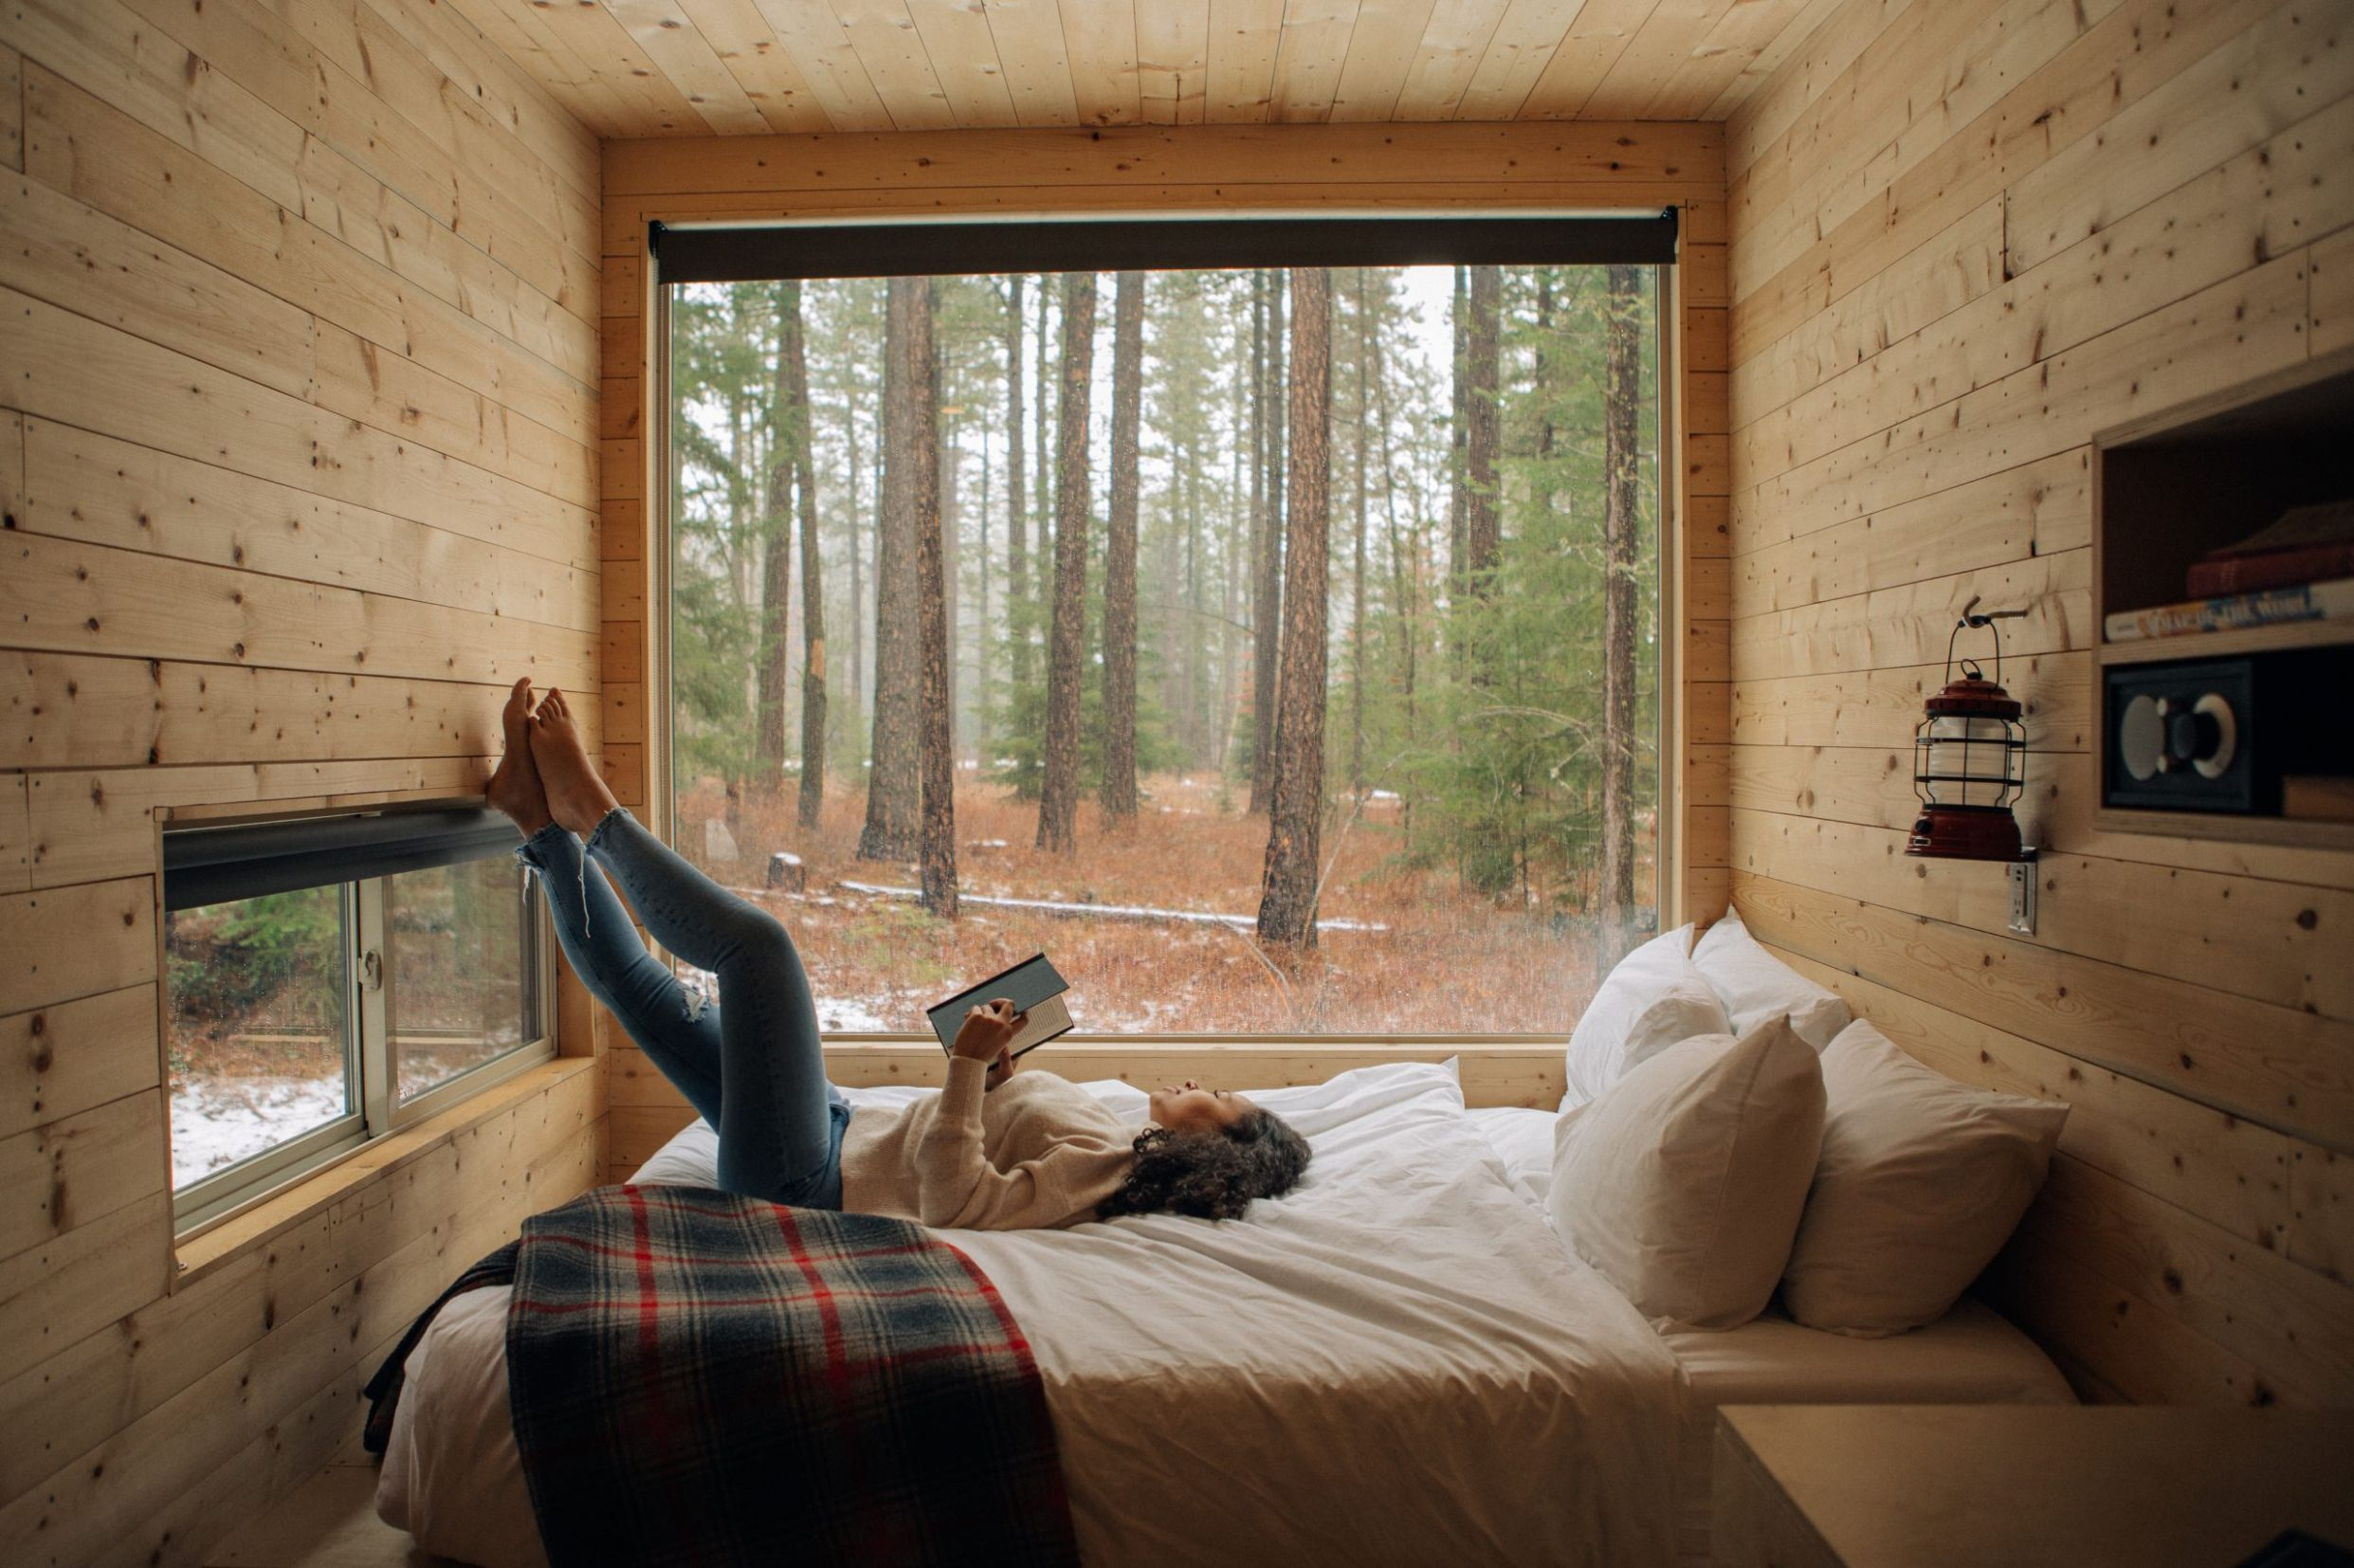 This Tiny House Company Embraces Artists and Sustainable Living ...